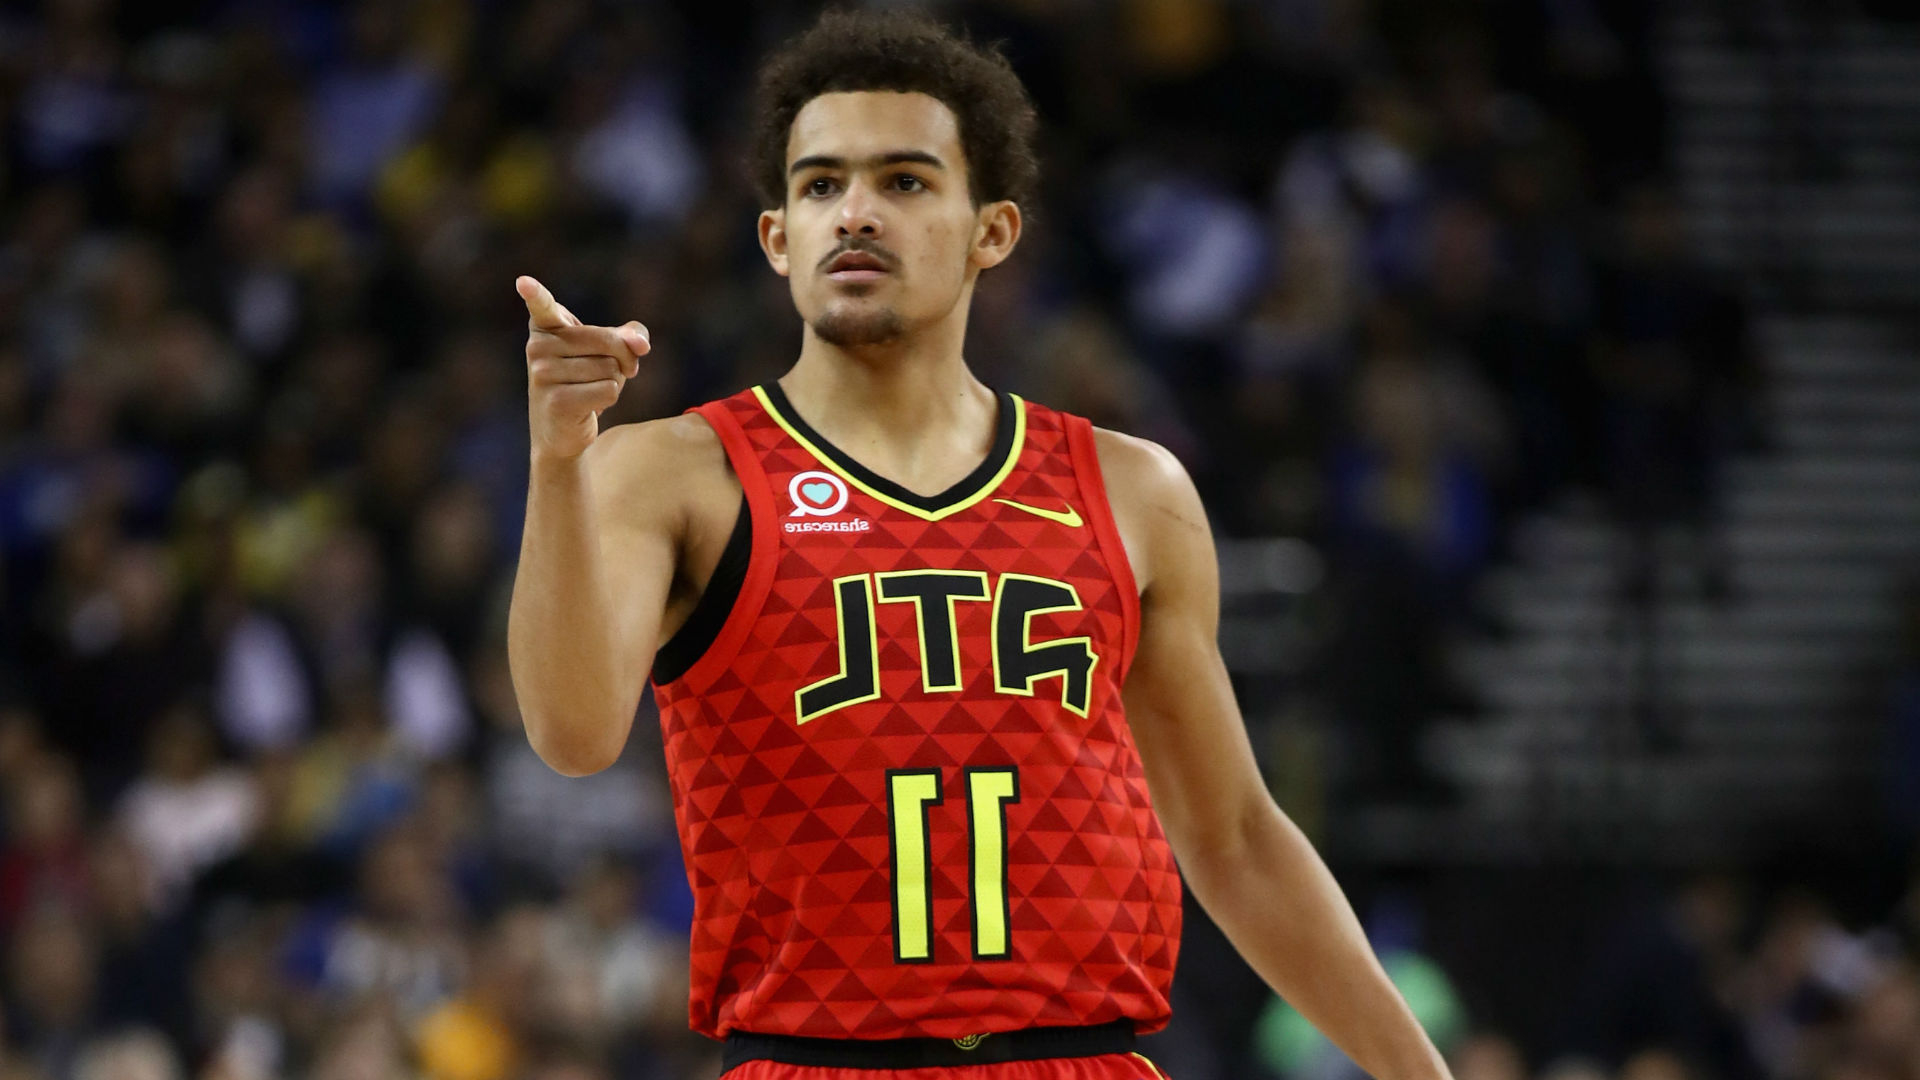 Sport Trae Young On Luka Doncic I M Going To Be A Better